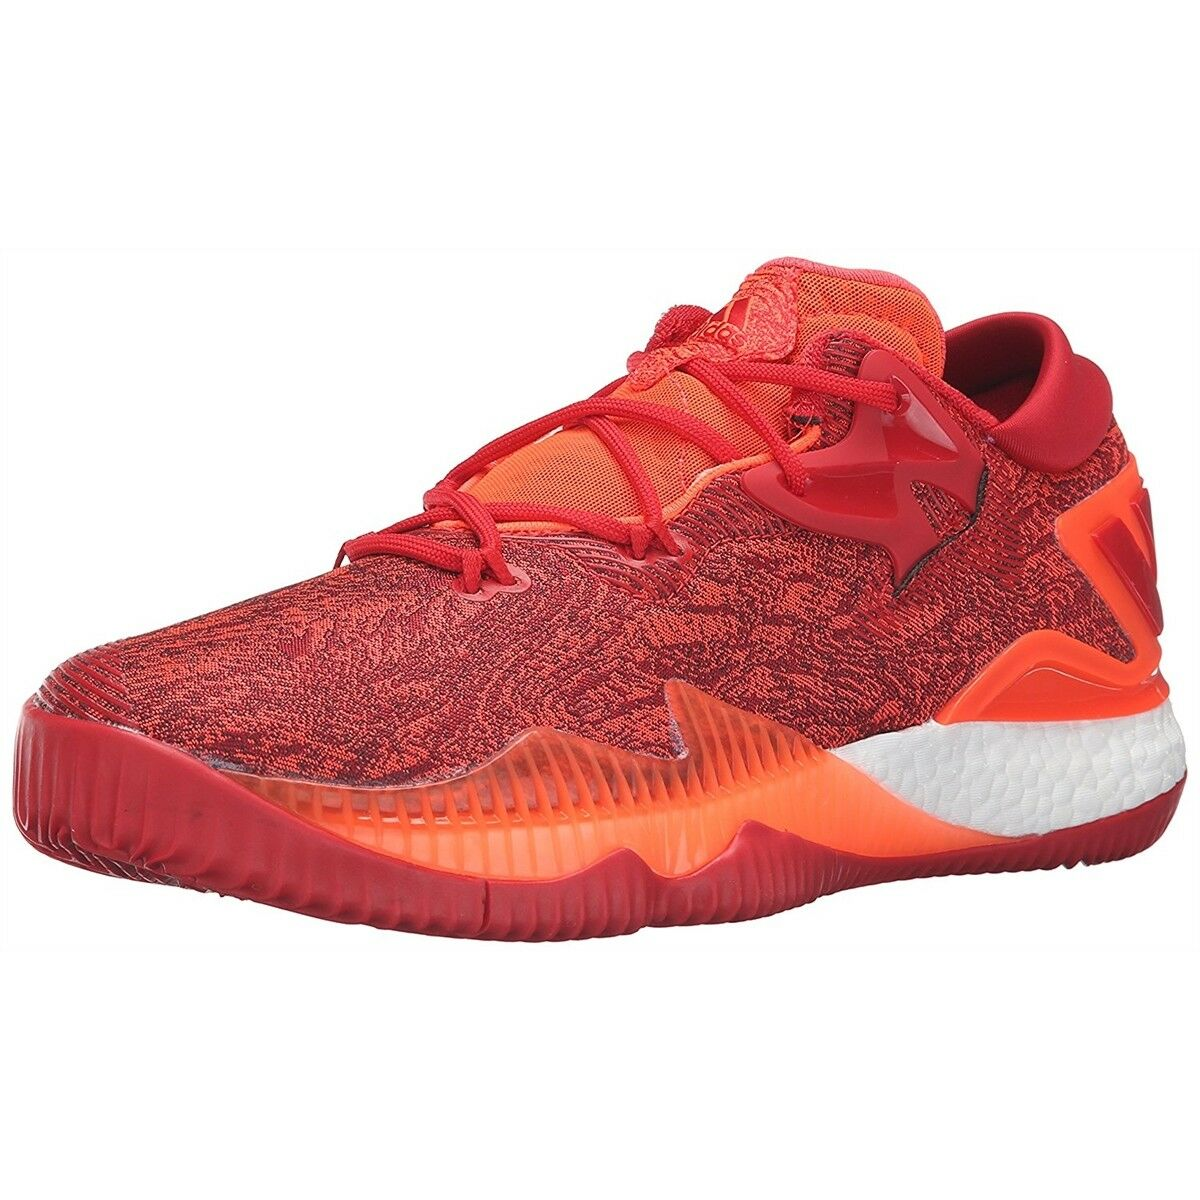 Adidas Men Athletic shoes Crazylight Boost Low 2016 Basketball shoes Solar Red